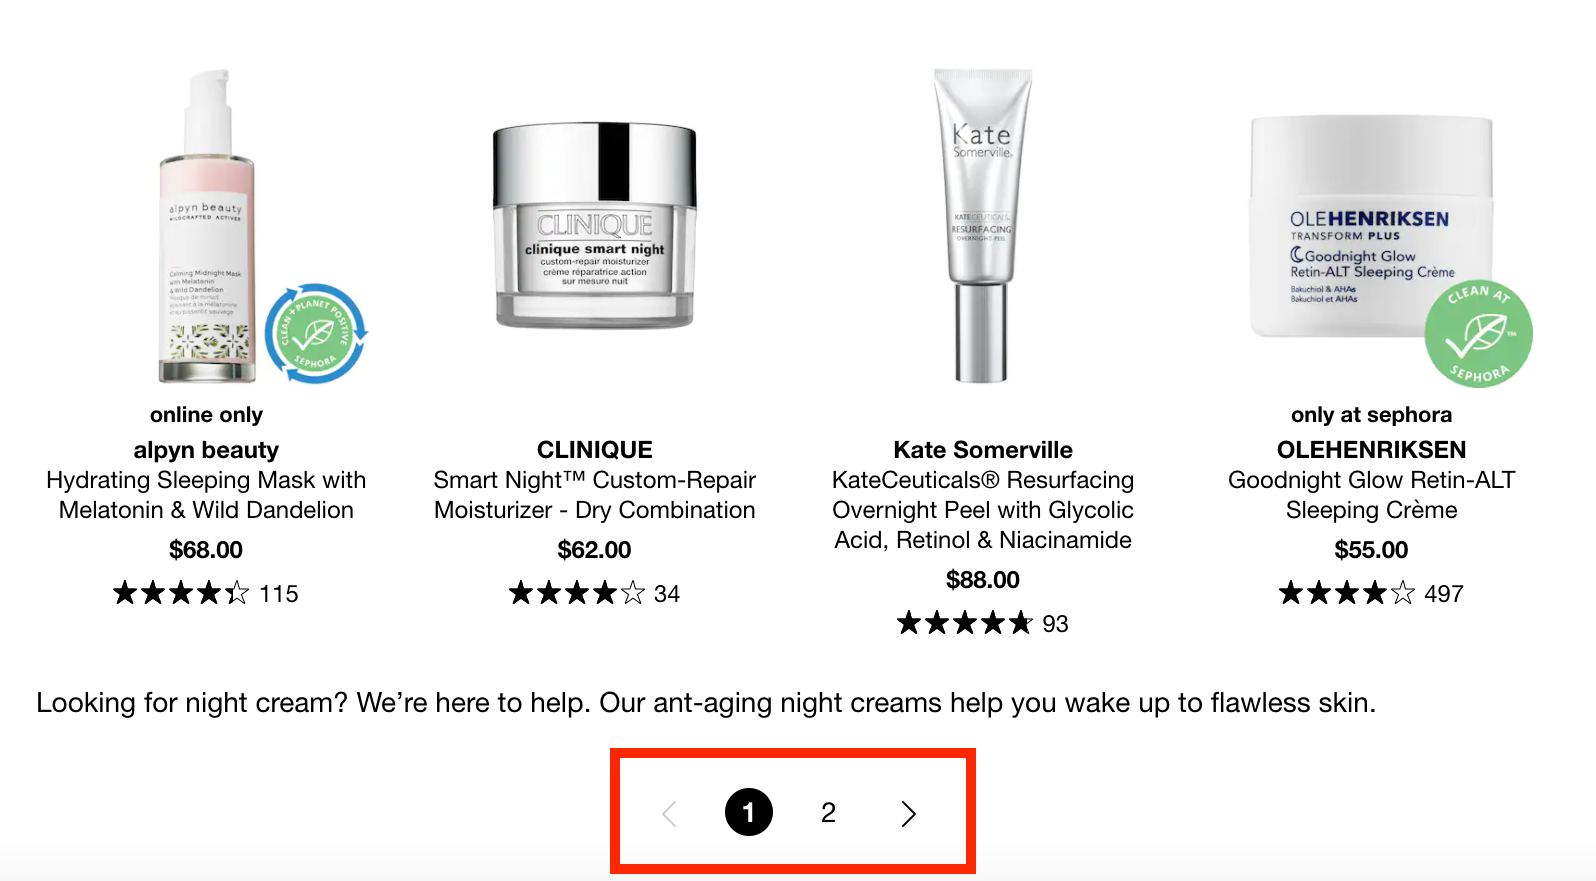 pagination in e-commerce product collection